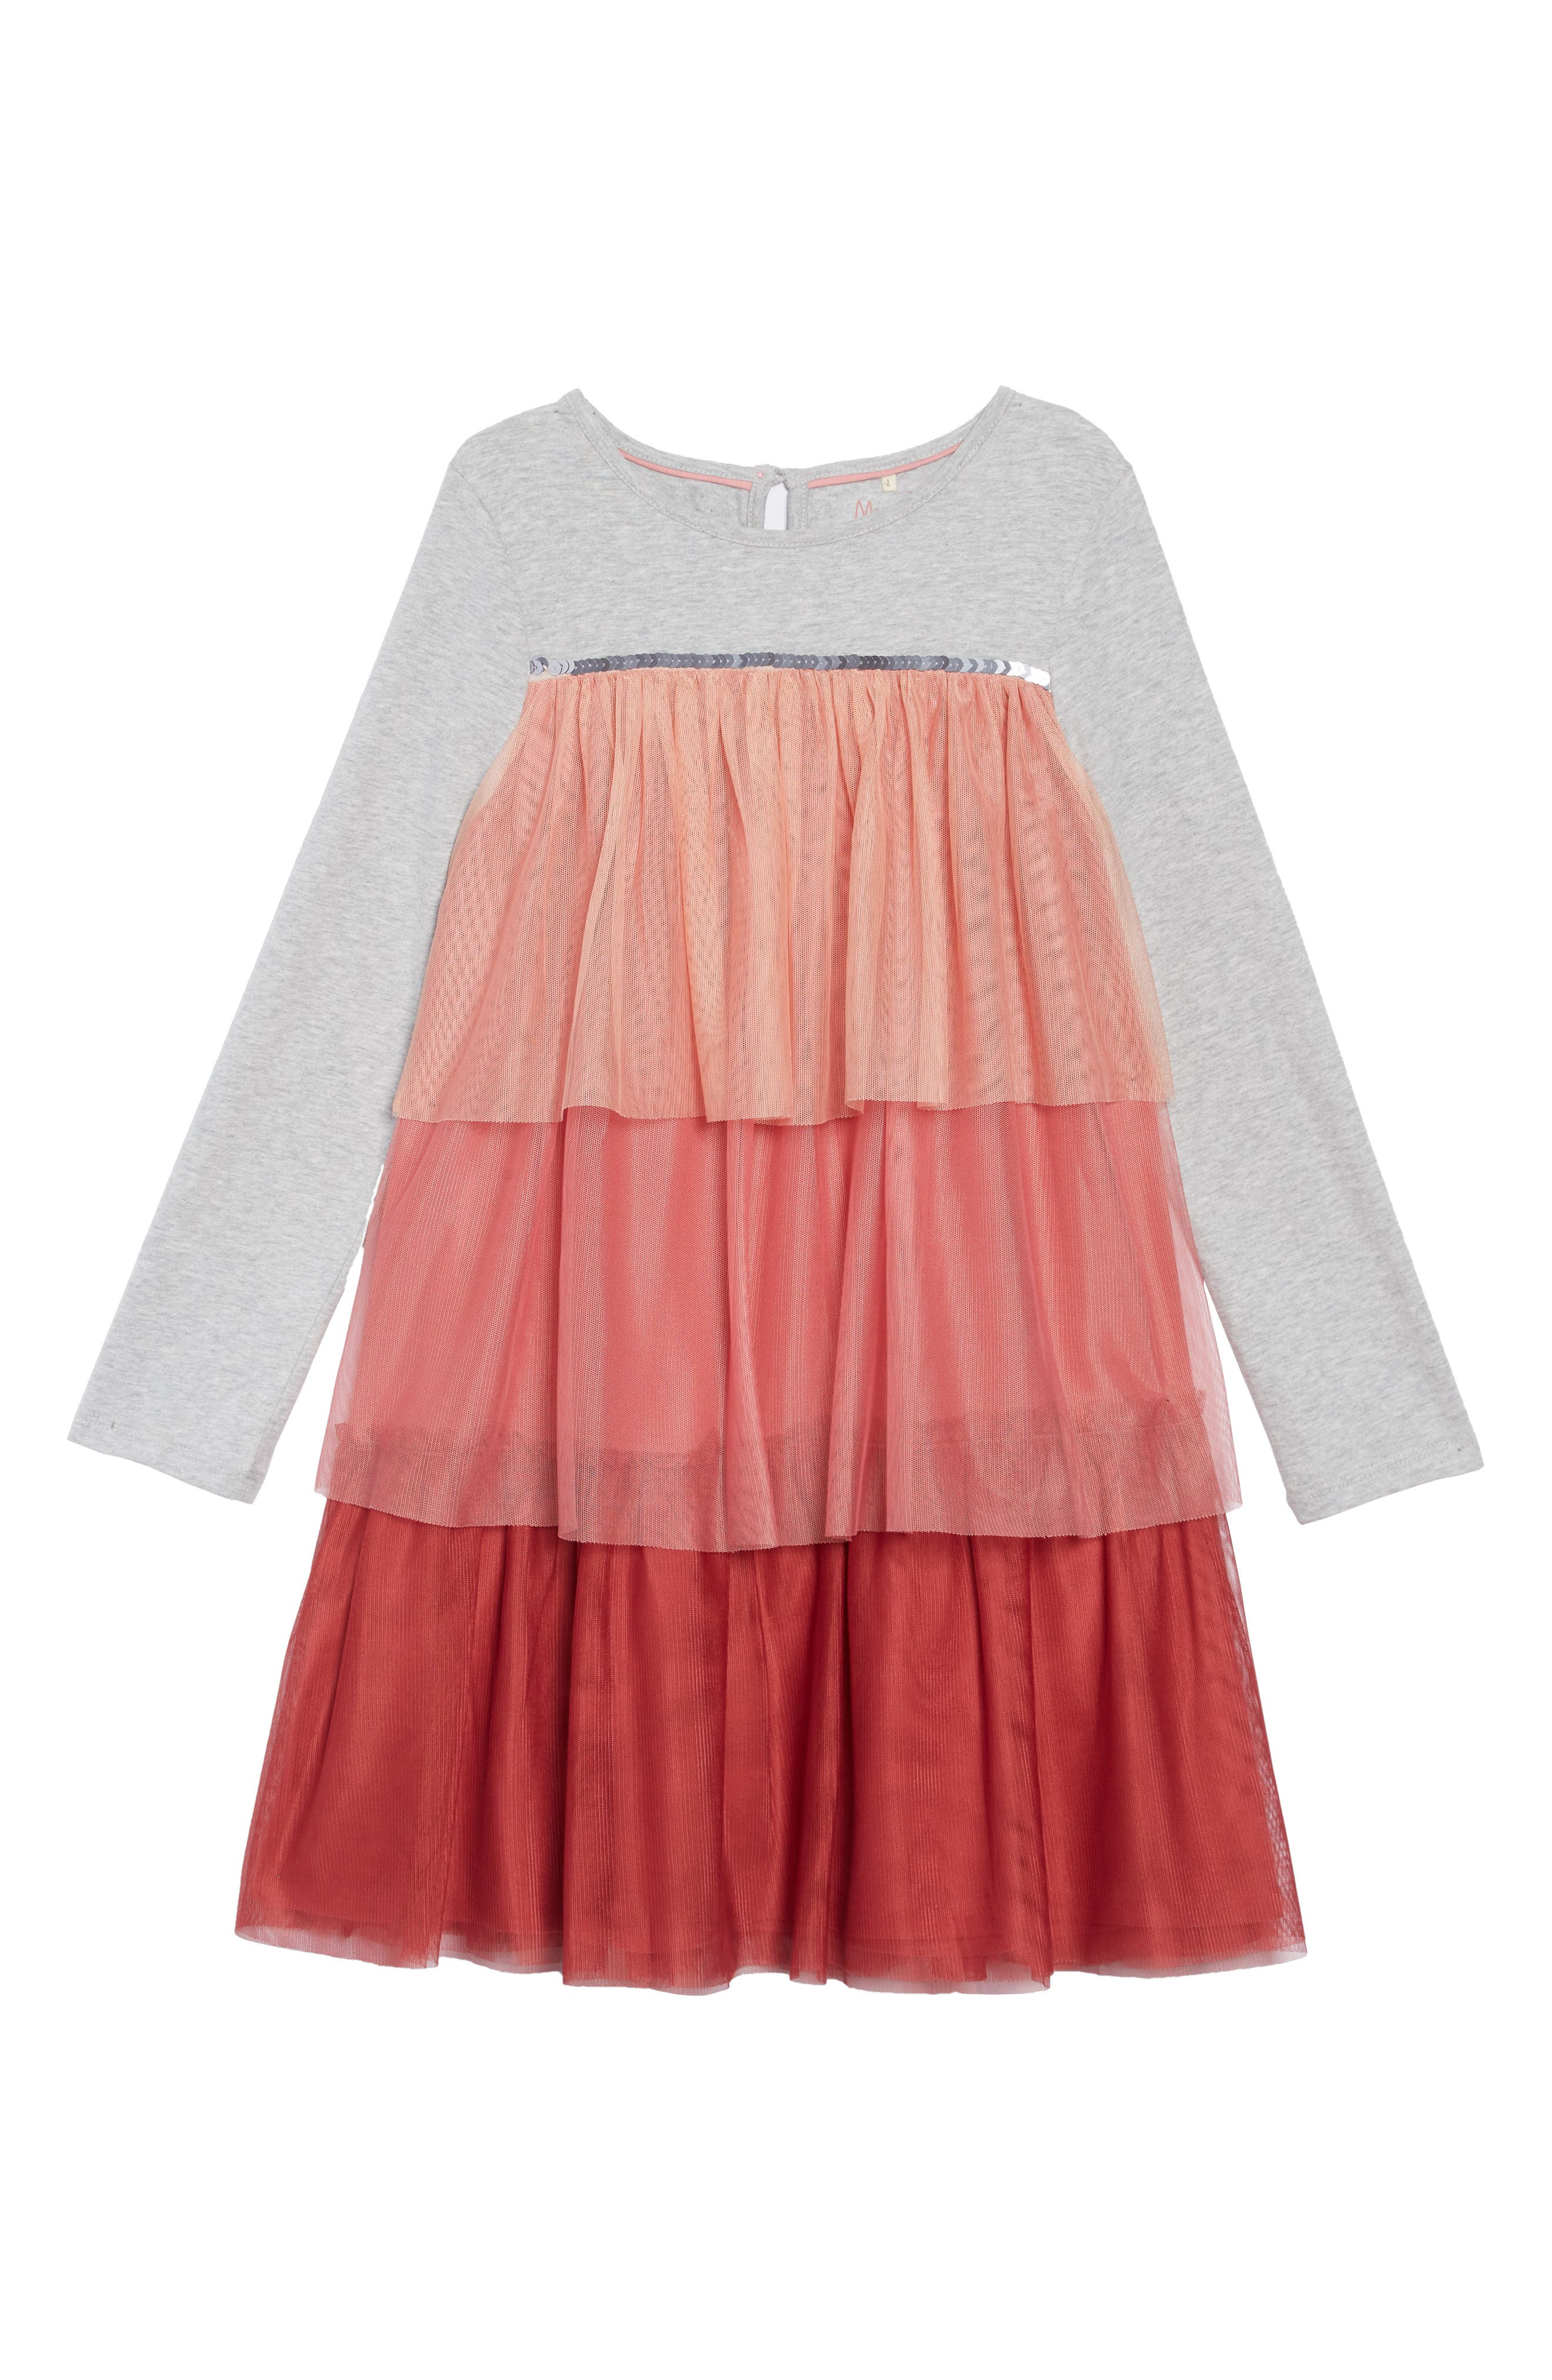 Jersey & Tulle Dress,                             Main thumbnail 1, color,                             ROSE PINK OMBRE